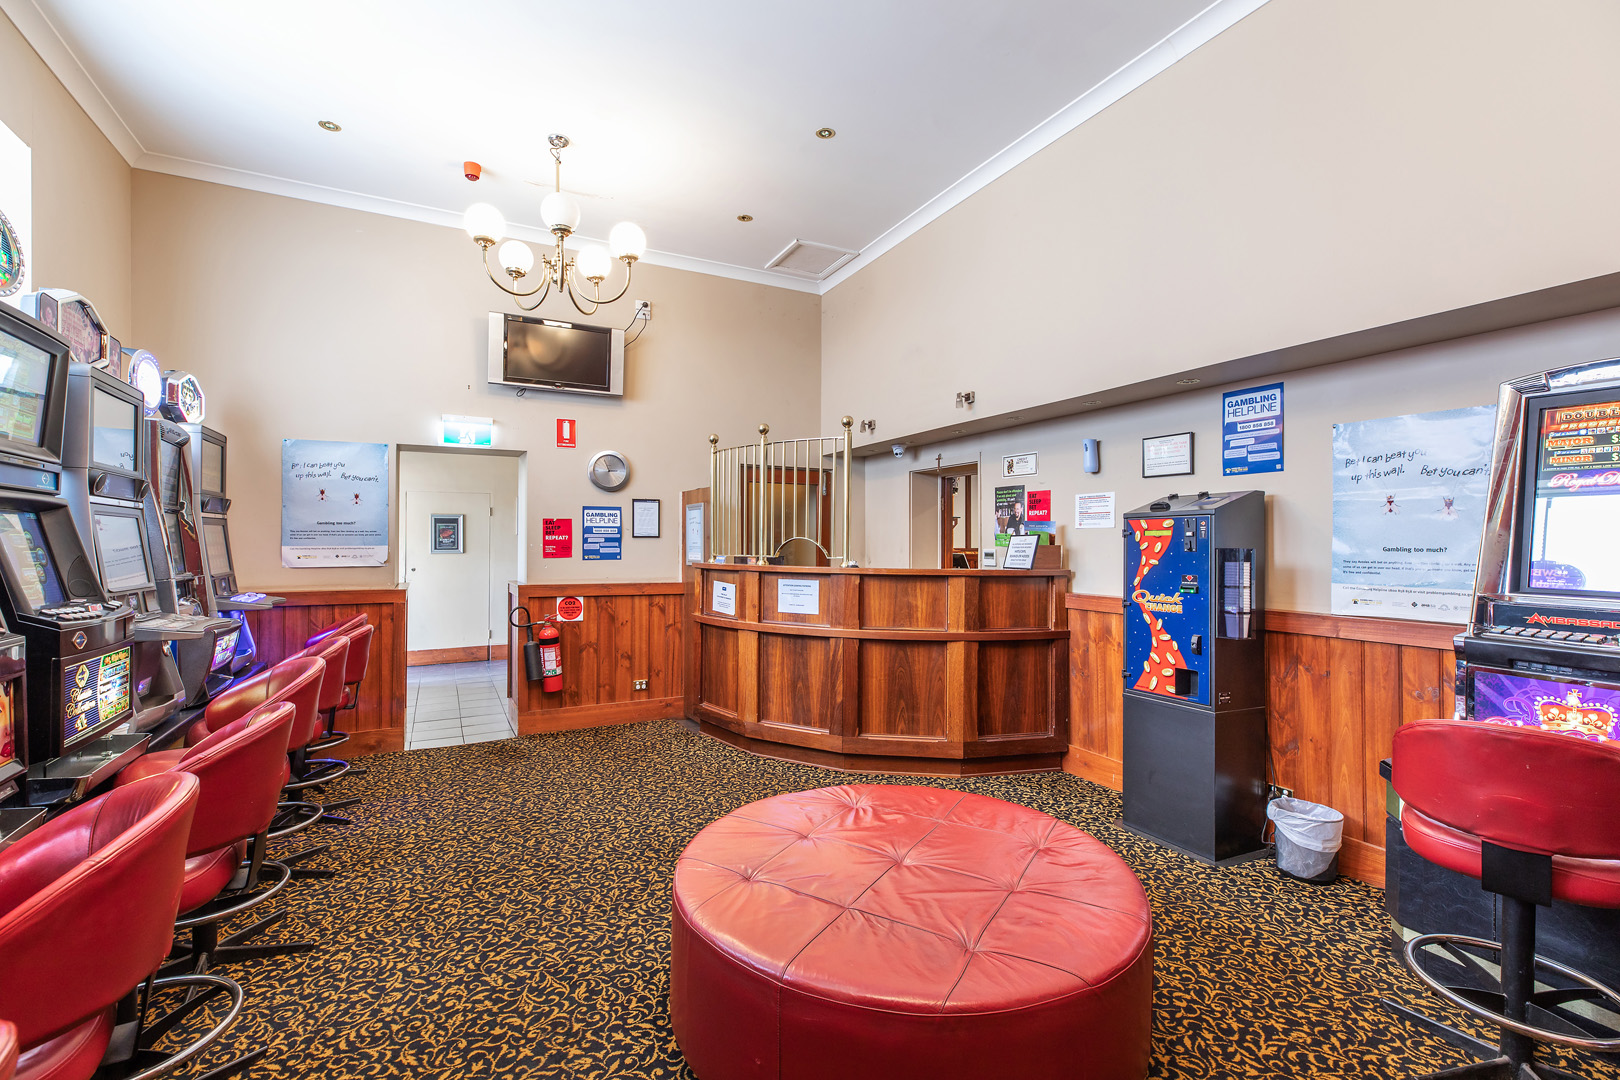 the-flinders-hotel-motel-pokies-gaming-room